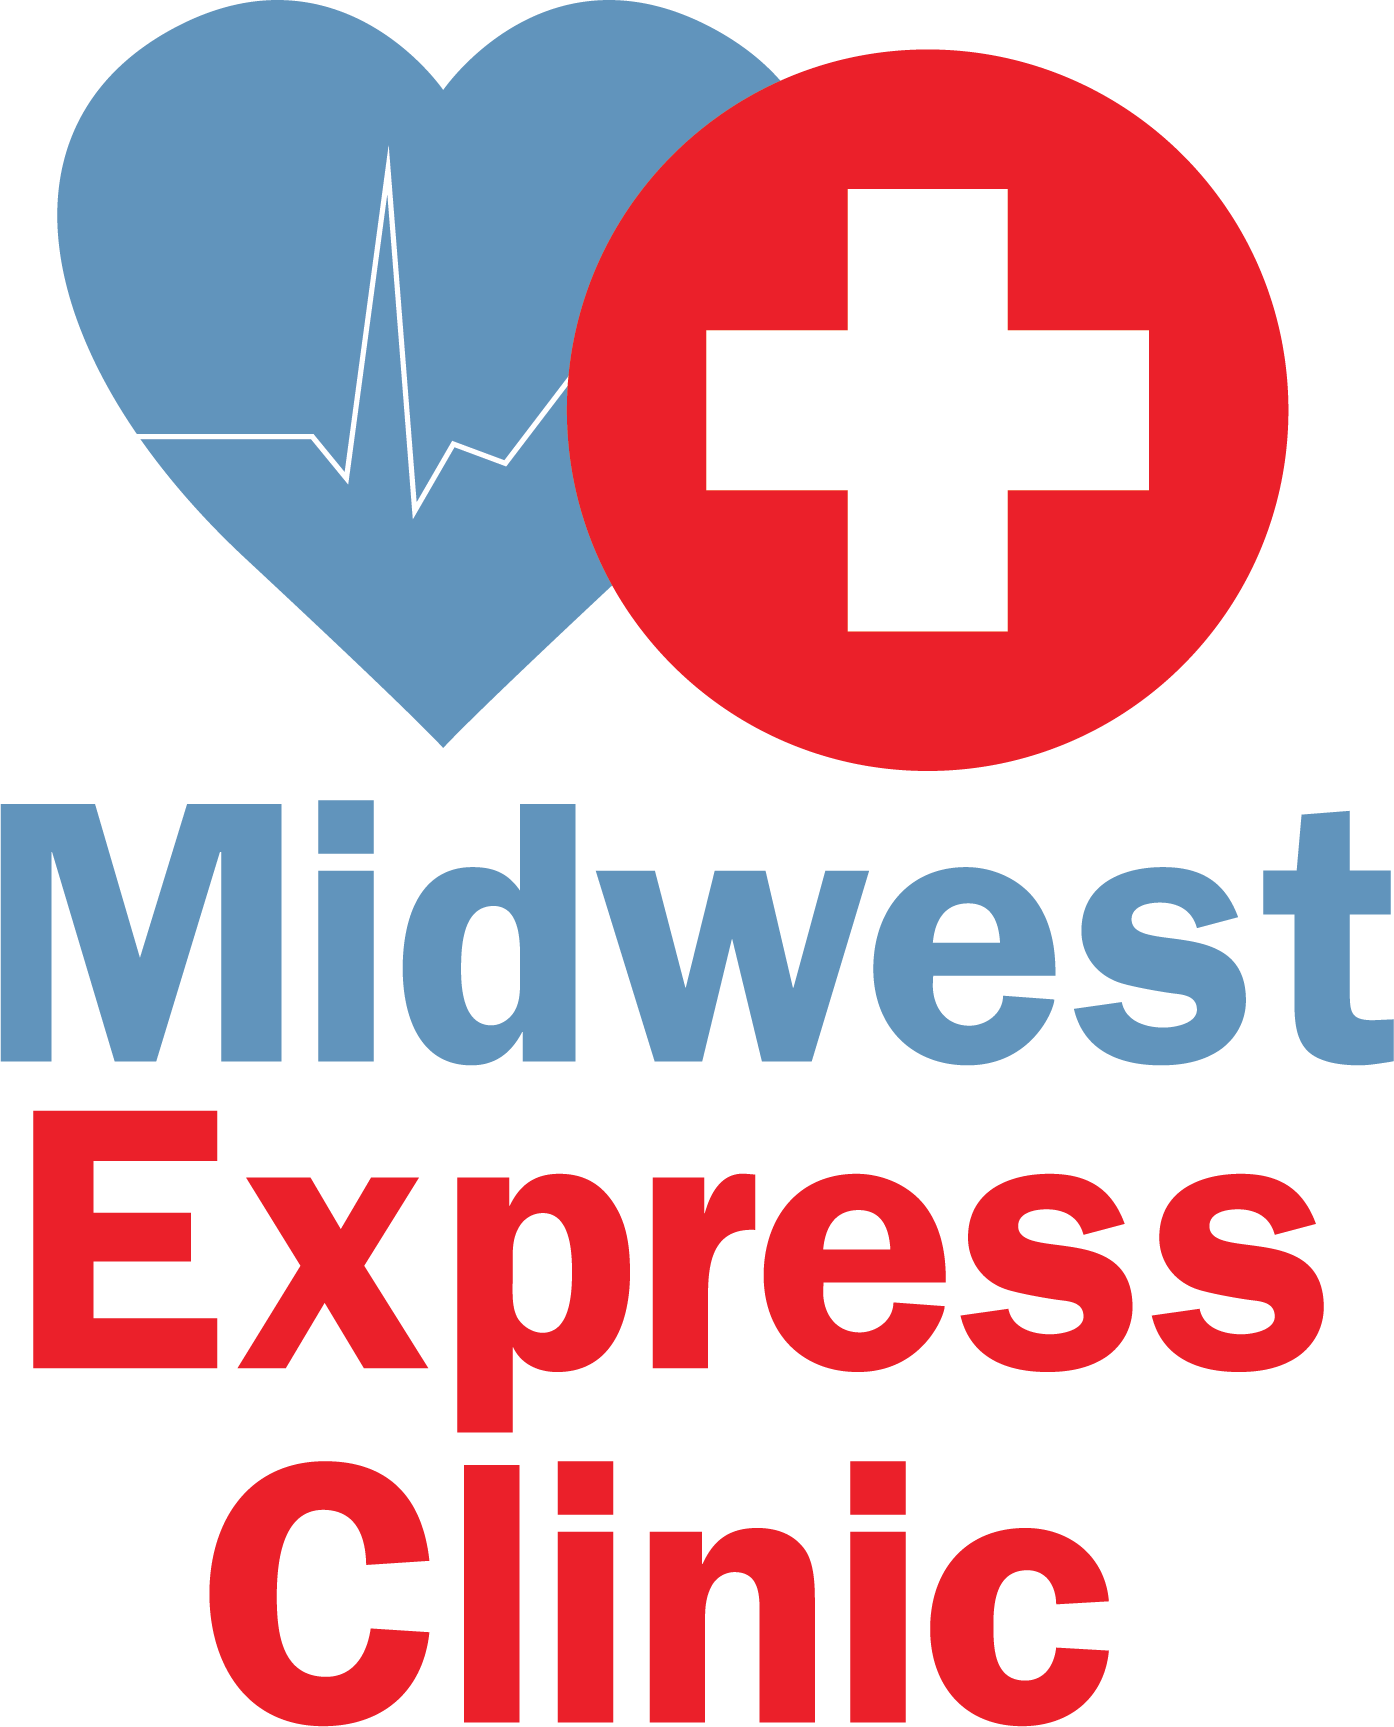 Midwest Express Clinic - River Forest Logo